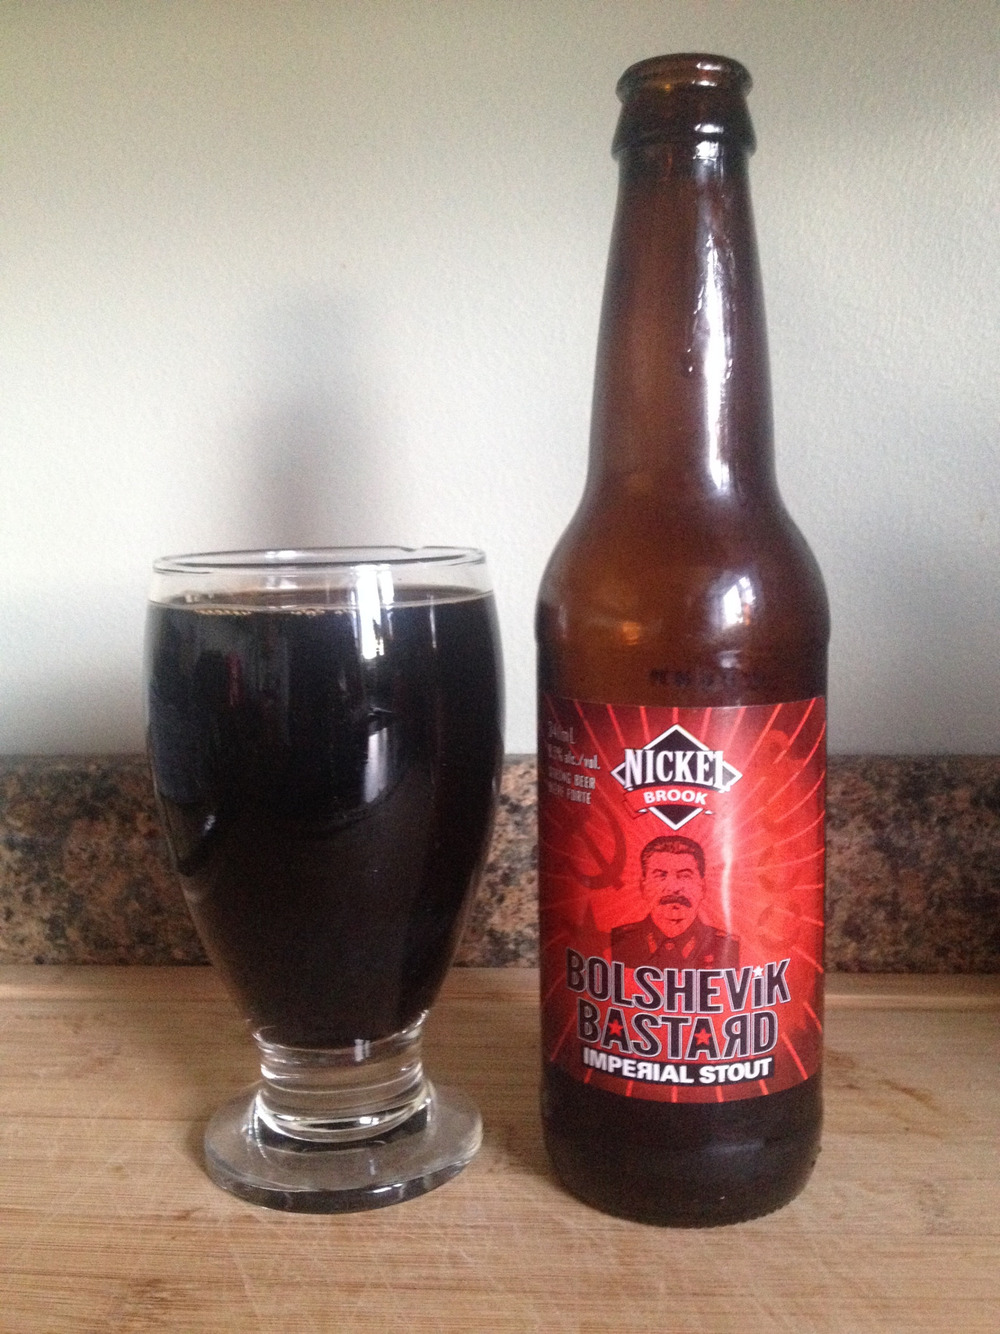 Nickel Brook Bolshevik Bastard Imperial Stout %9 ABV'li bir sufle.